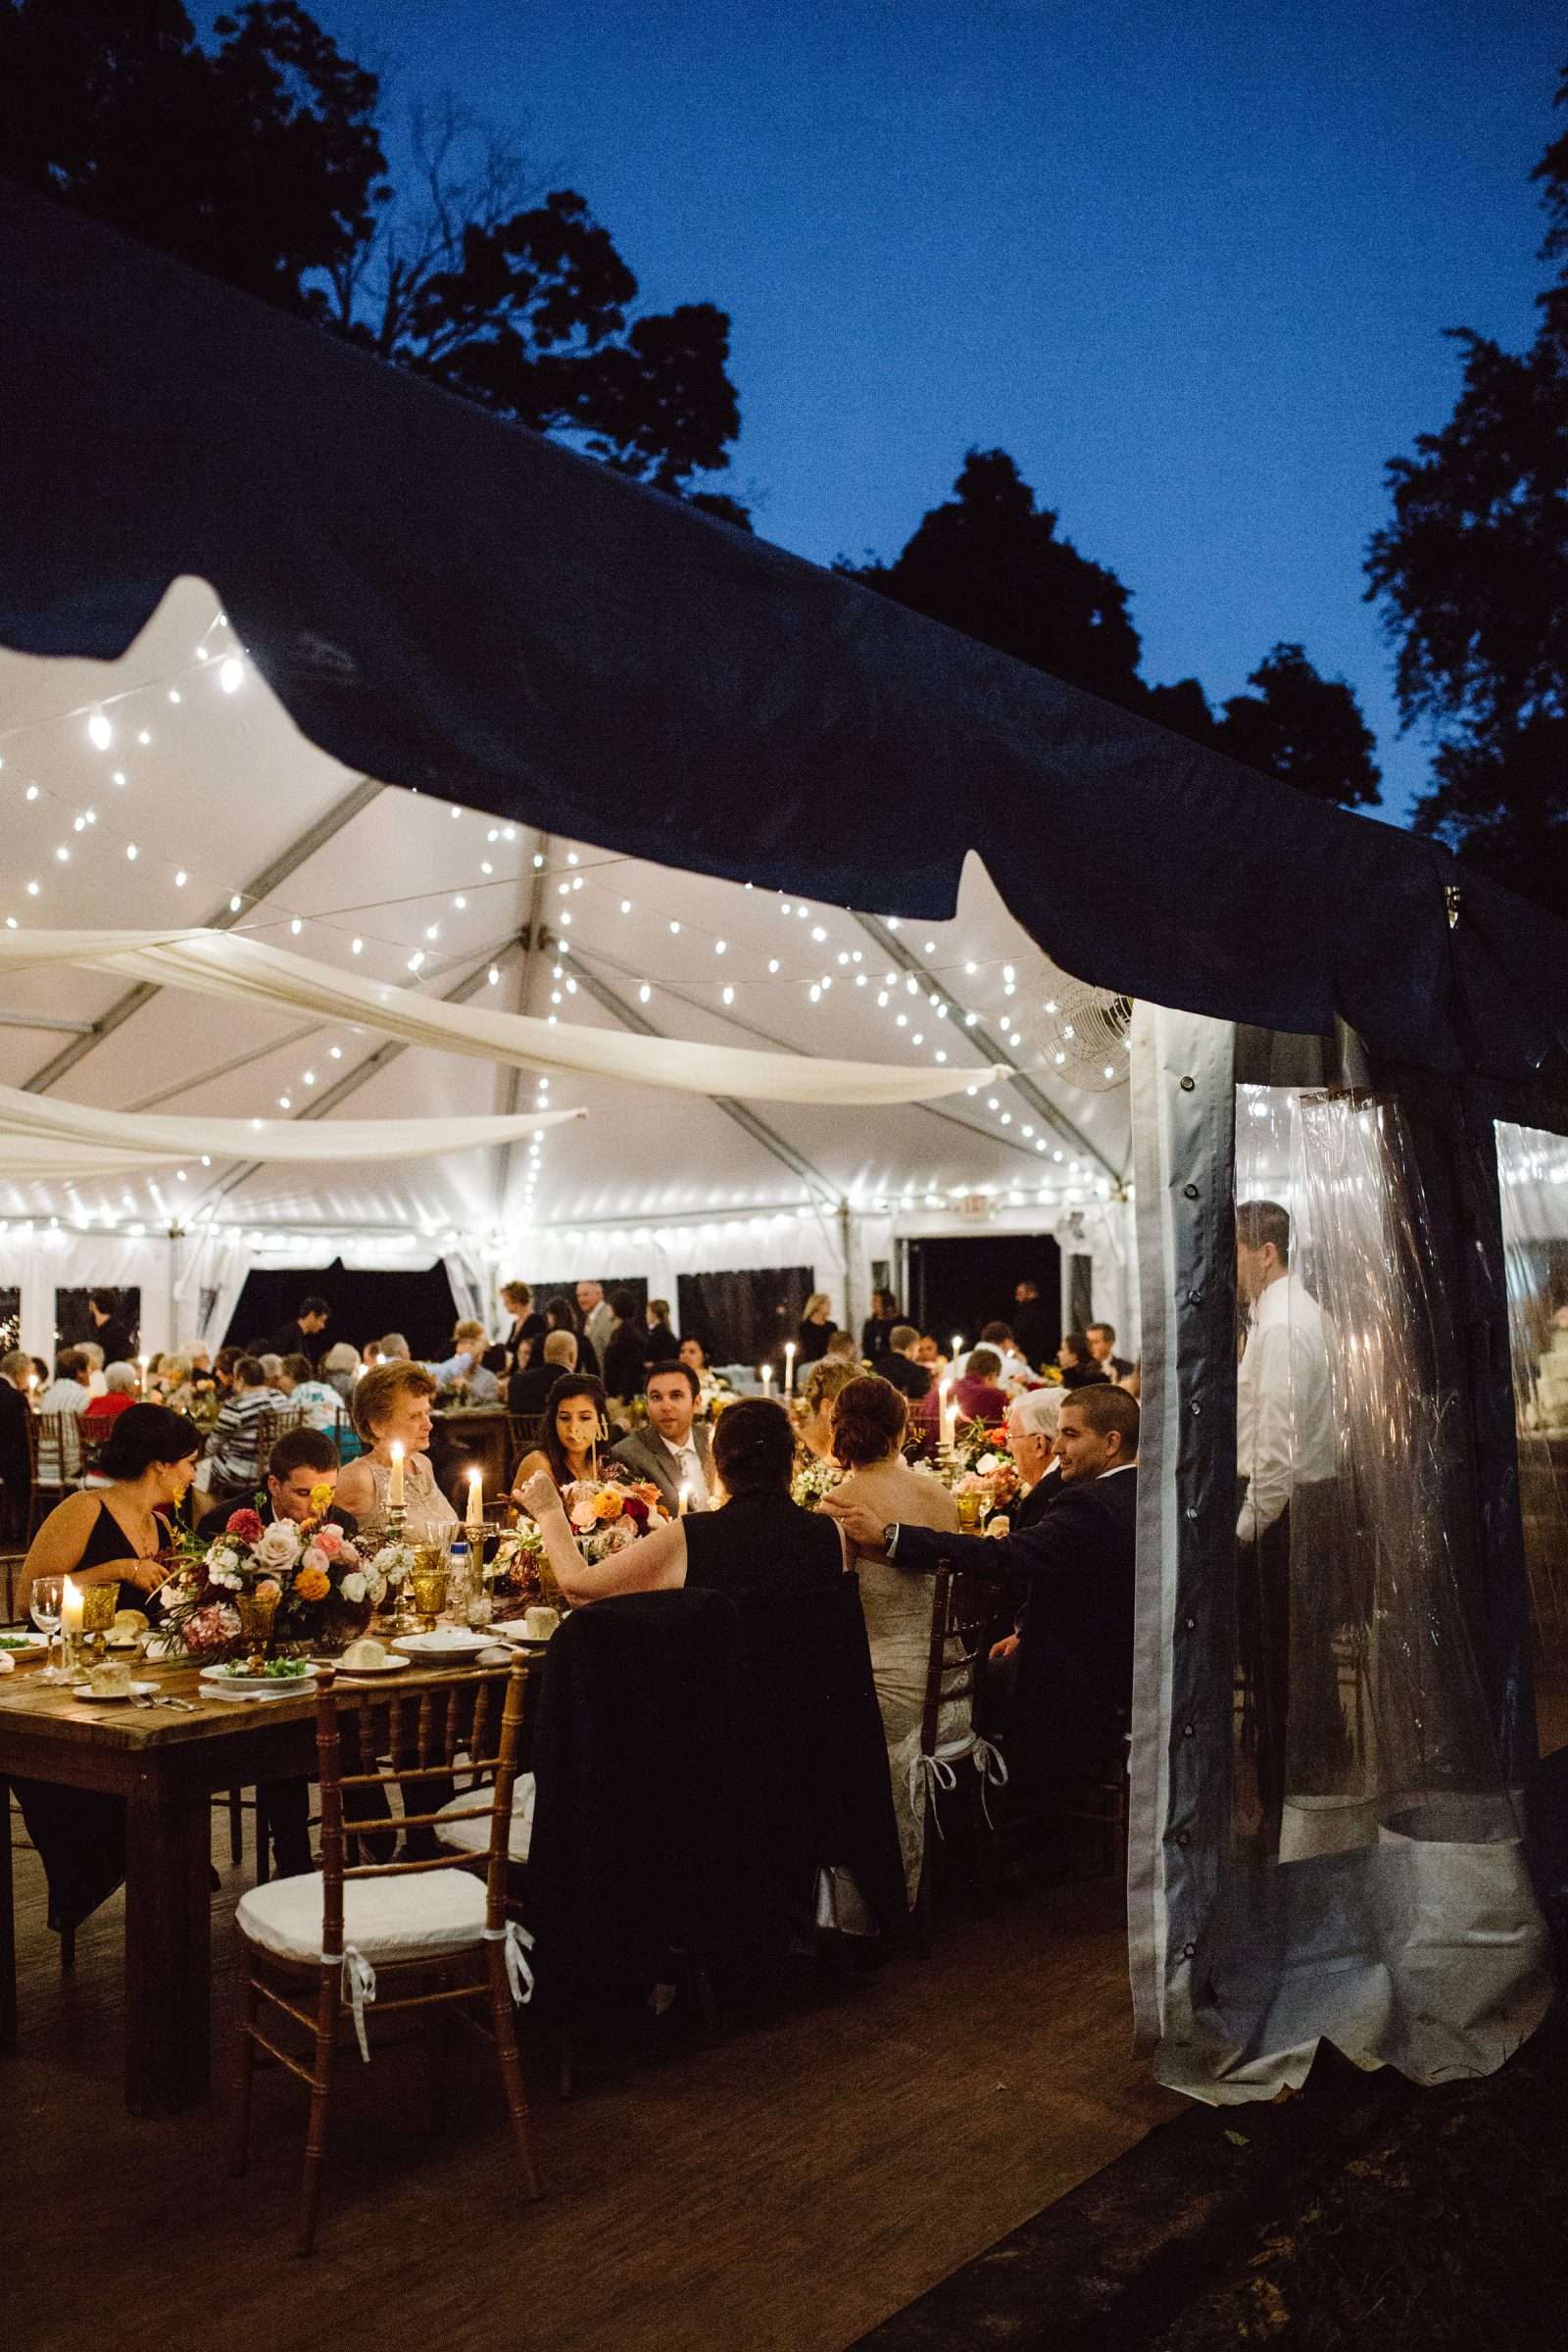 Dinner at farmhouse tables under a lighted tent at Ridgeland Mansion Philadelphia Wedding. Photo by Ali & Paul Co.